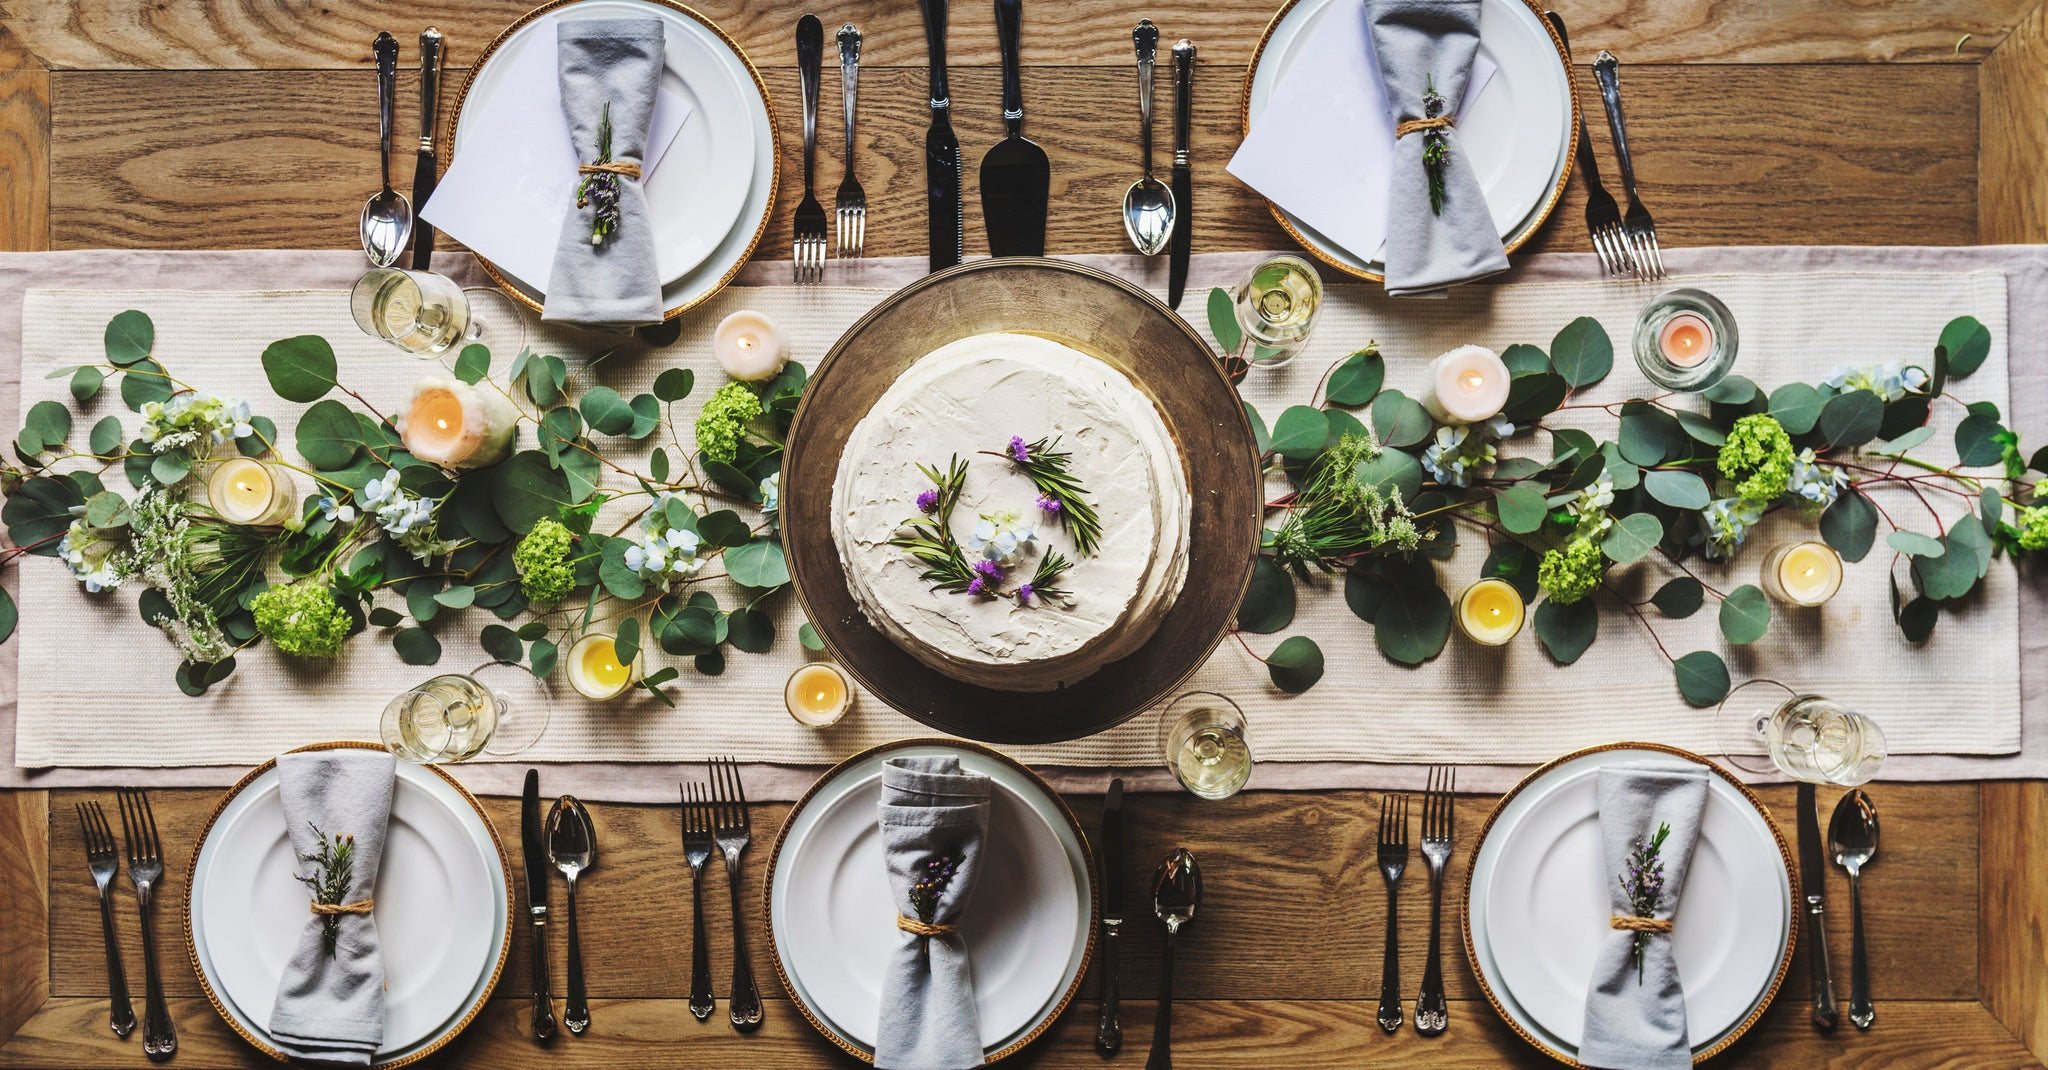 5 Easy Steps to a Beautiful Table Setting this Holiday